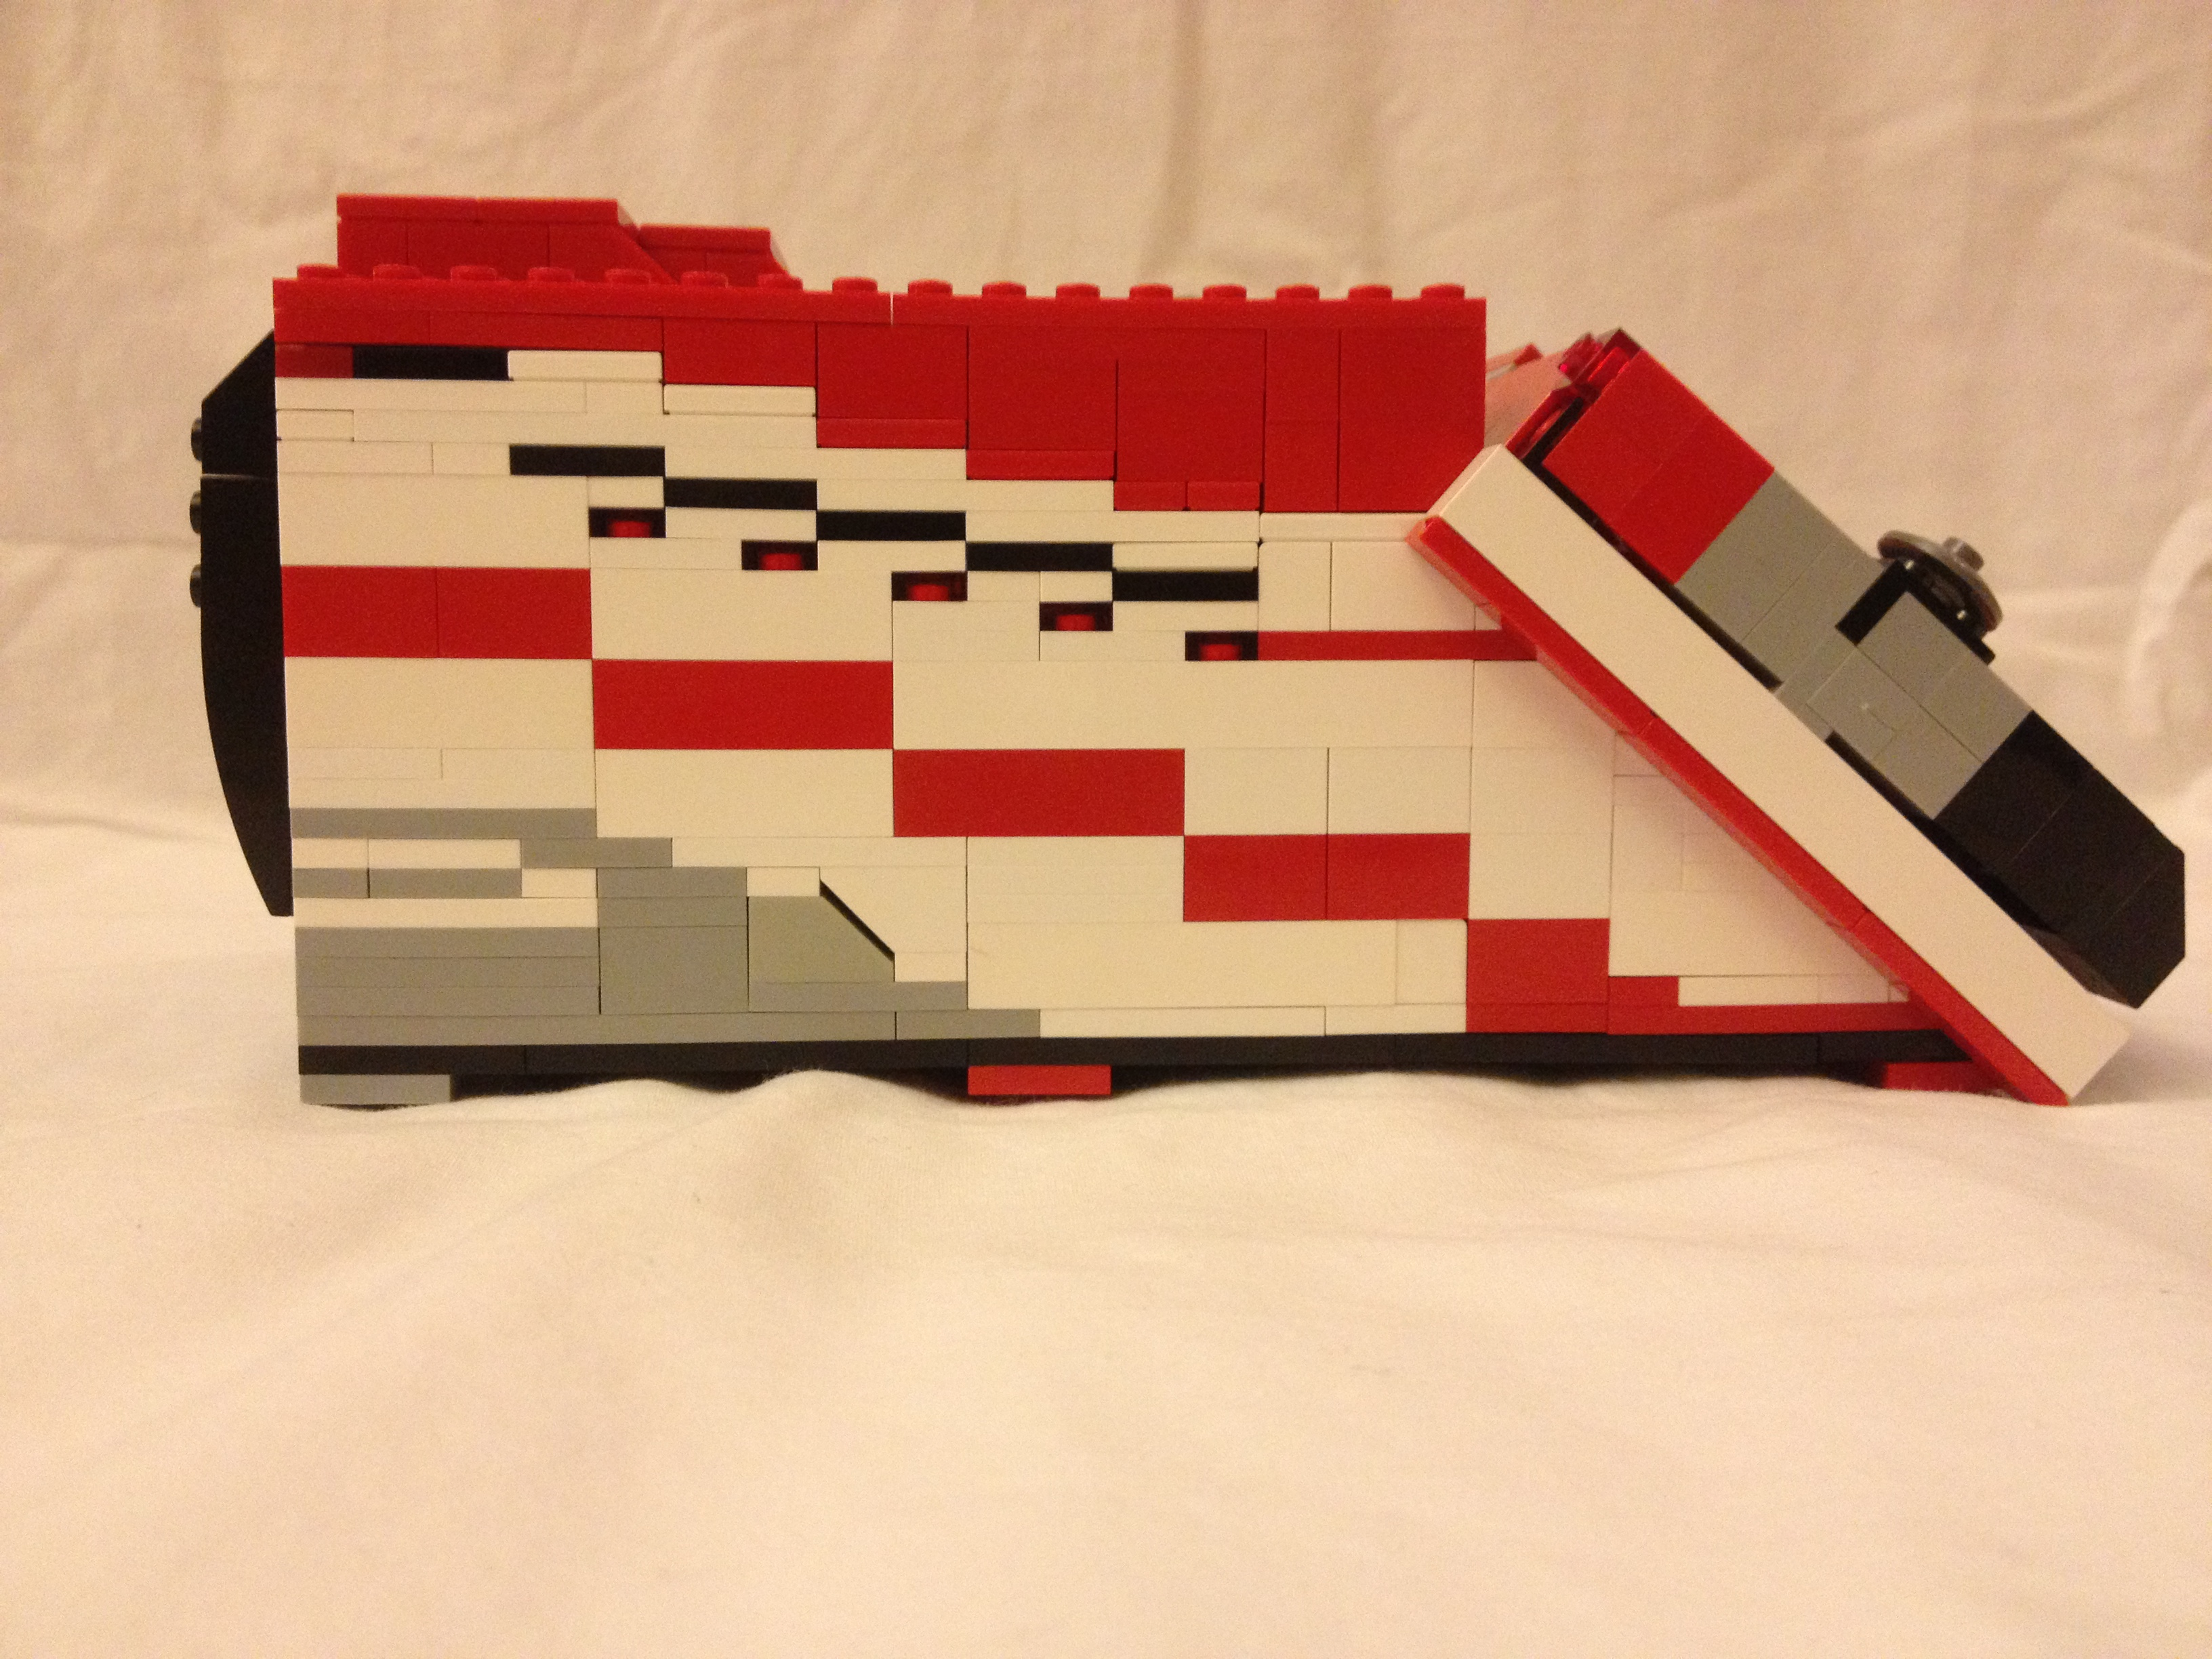 Picture of Starspeeder 1000 Made of Lego